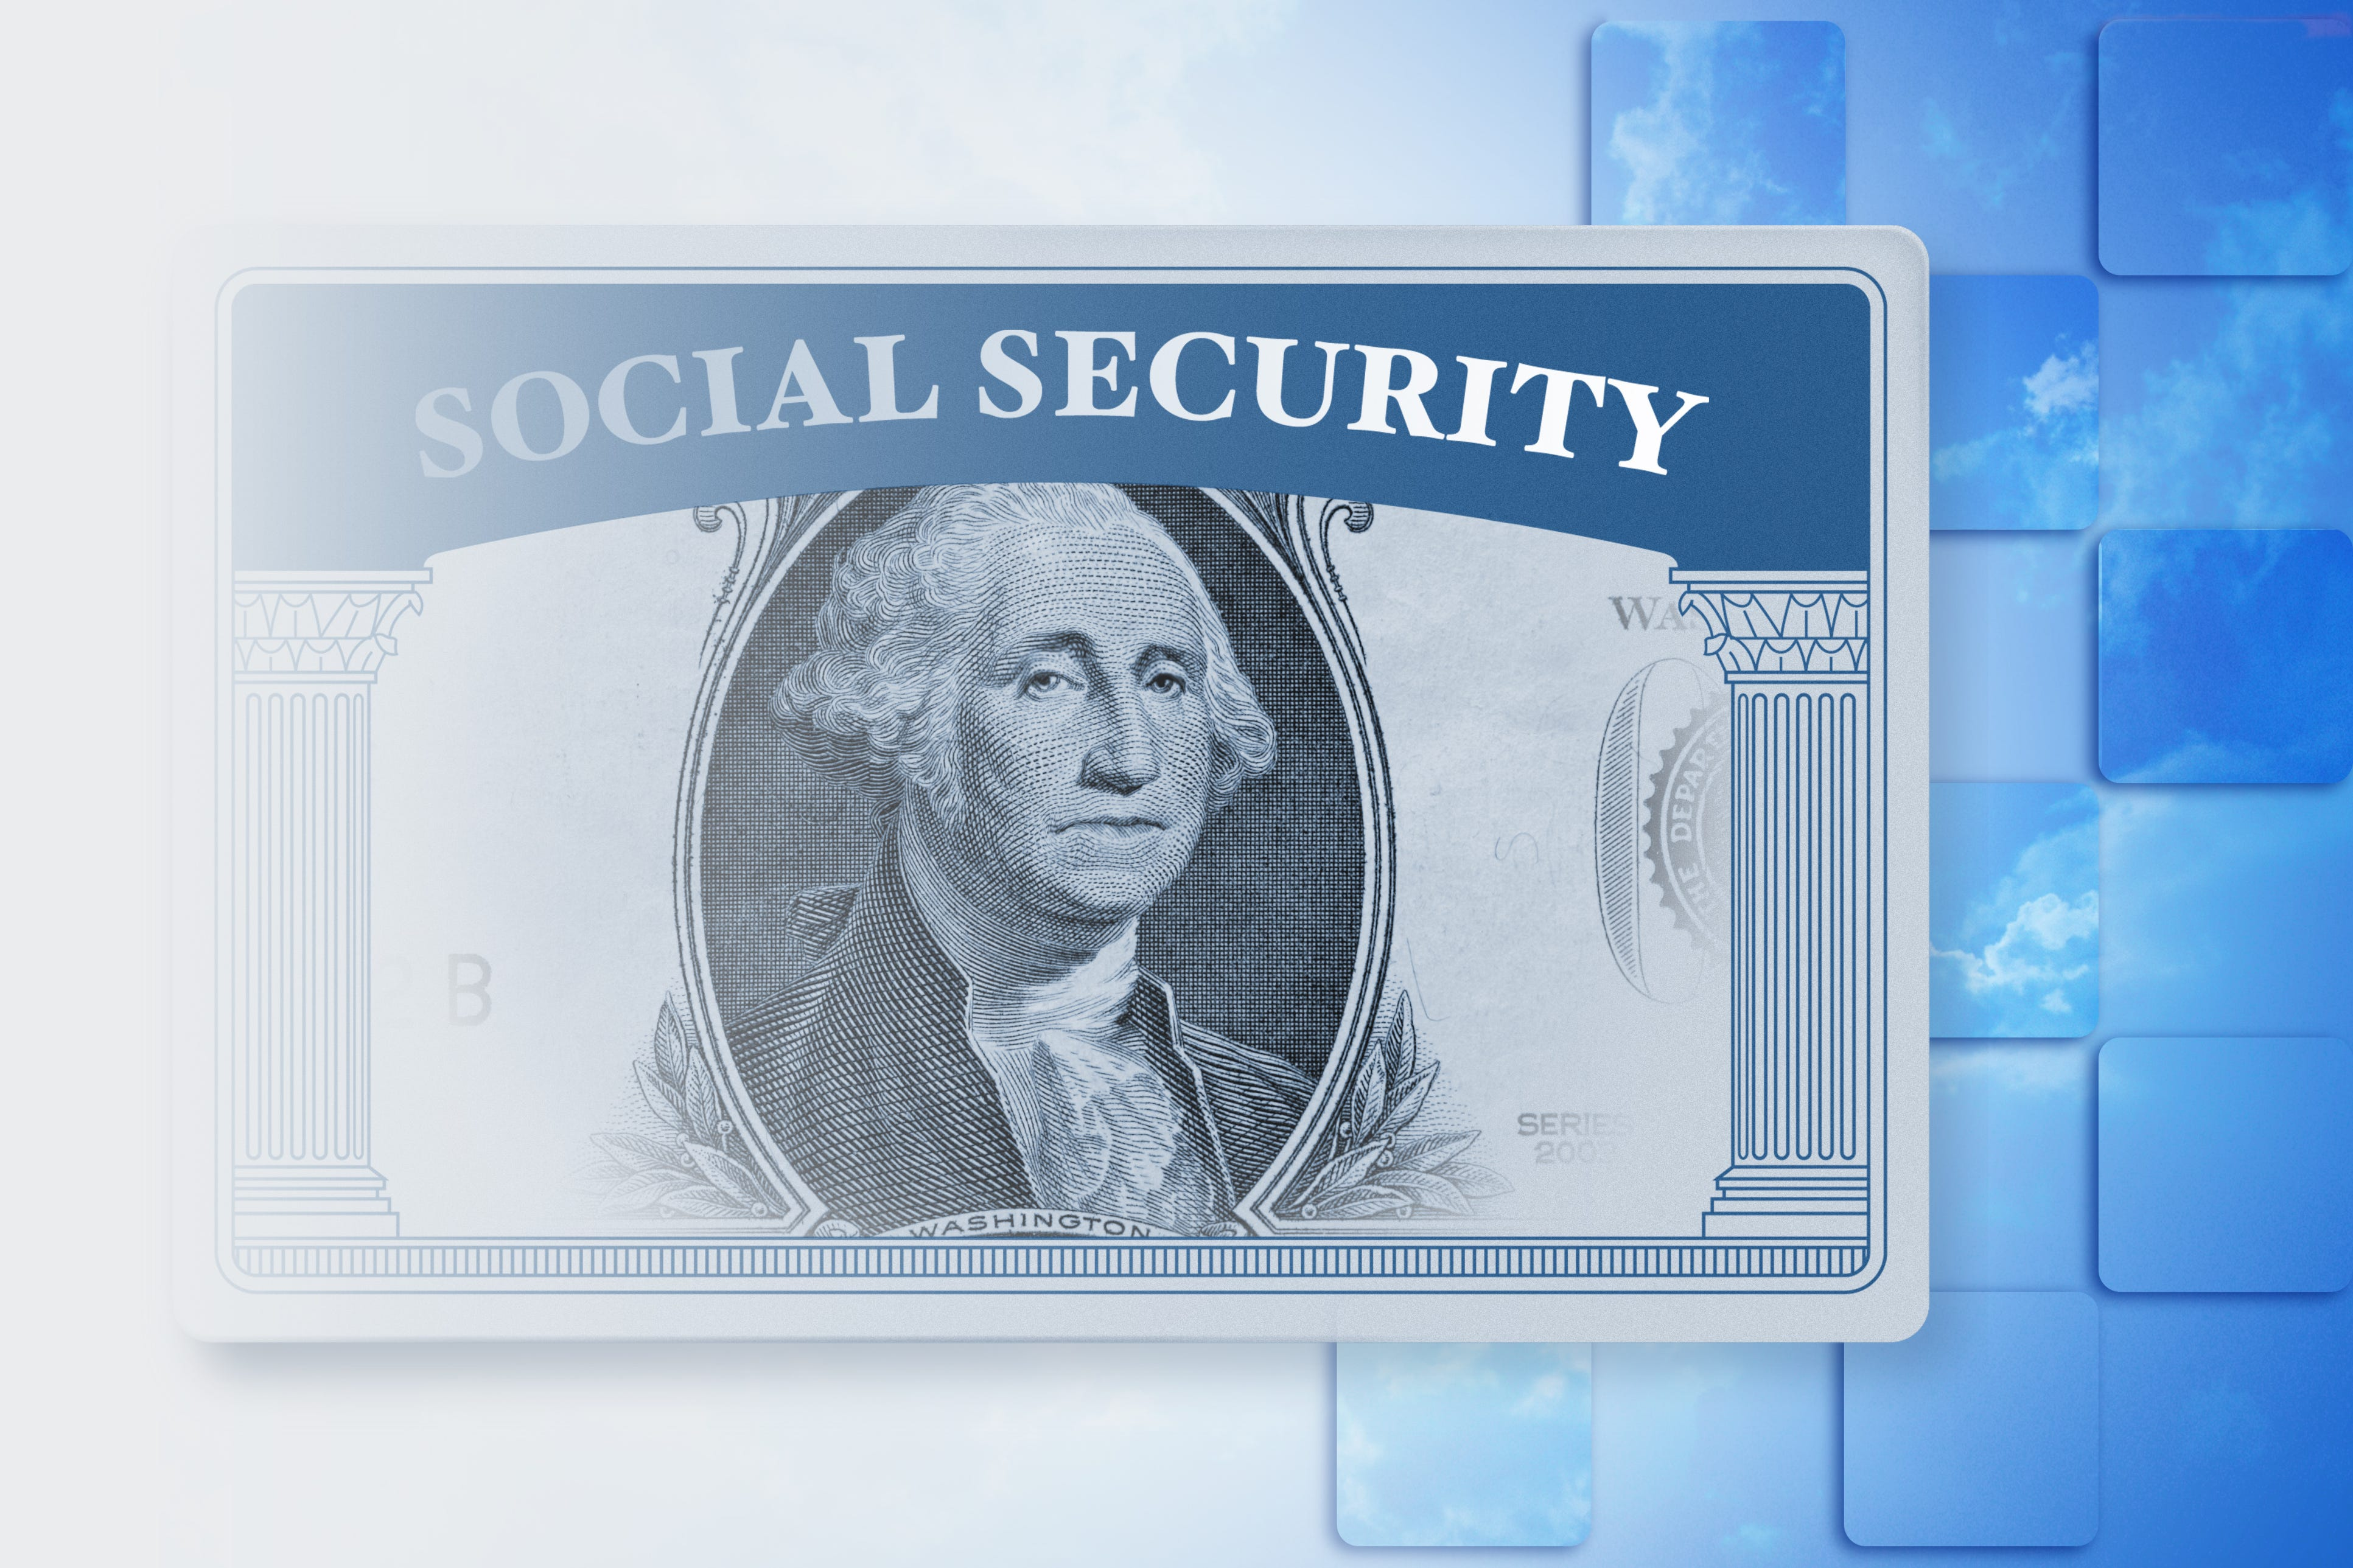 File and suspend: Smart Social Security plan?